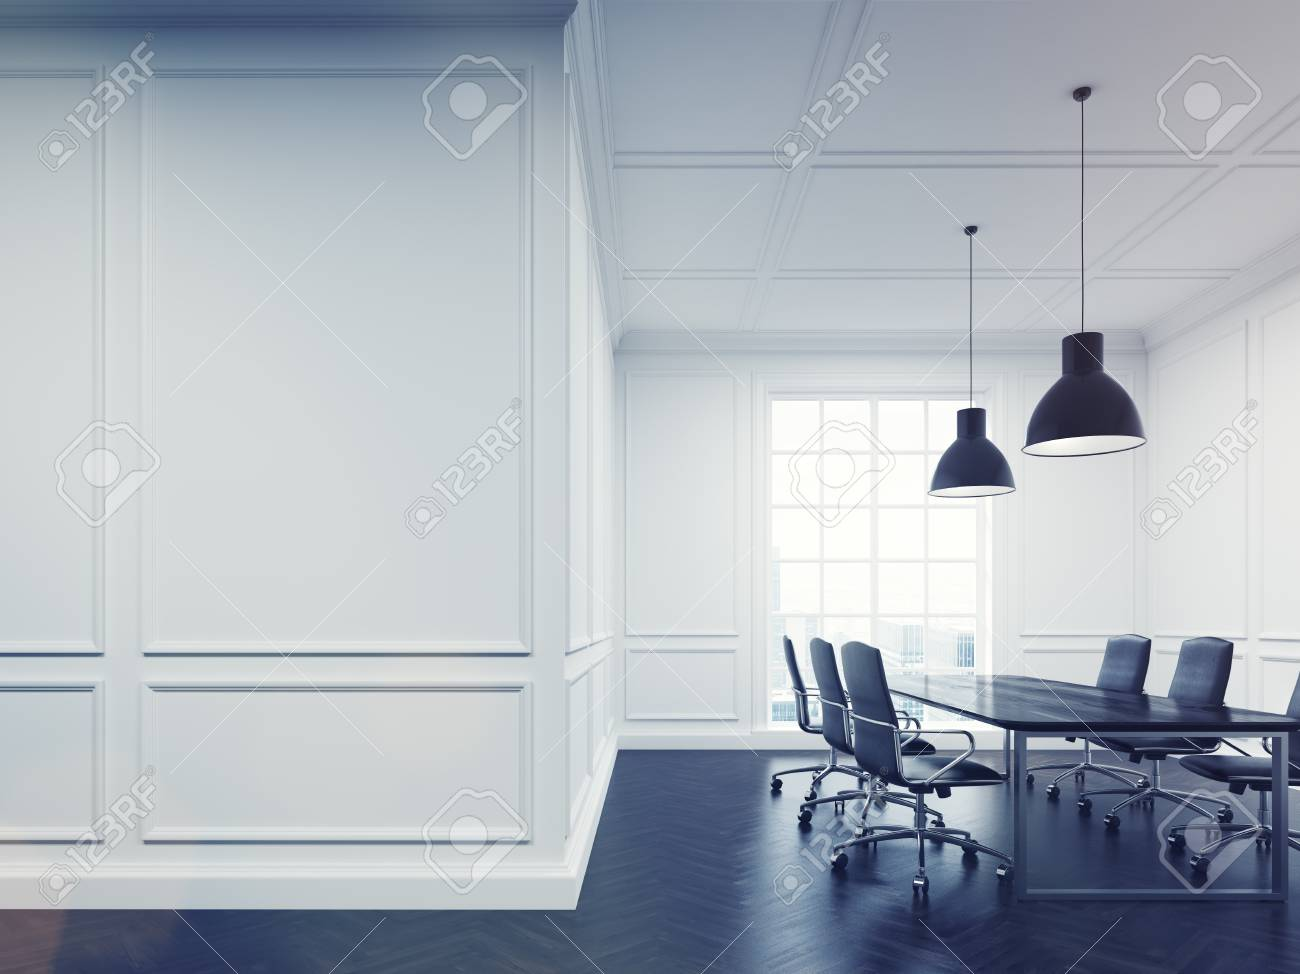 Meeting Room Interior With White Walls Long Conference Table - Long meeting table